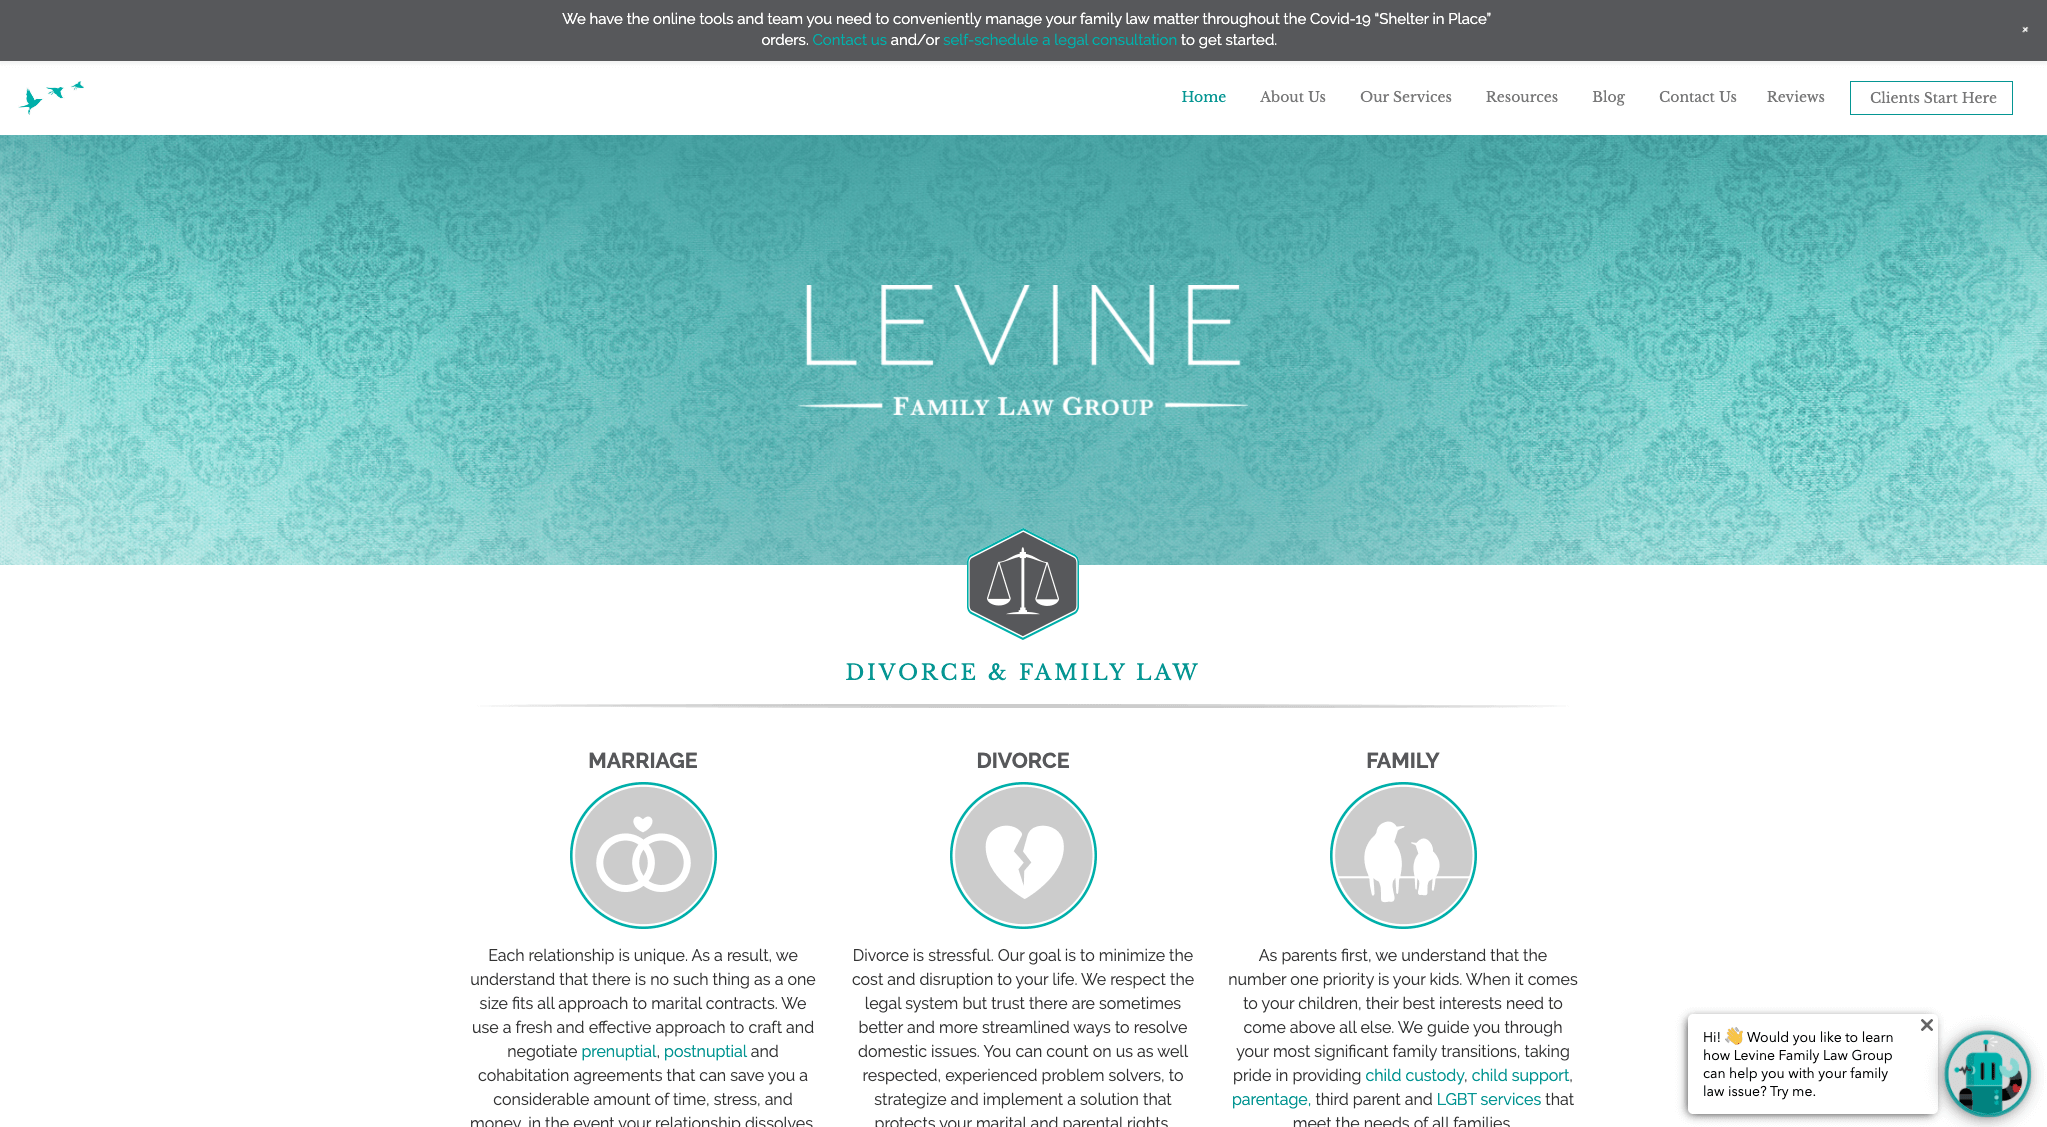 Levine Family Law